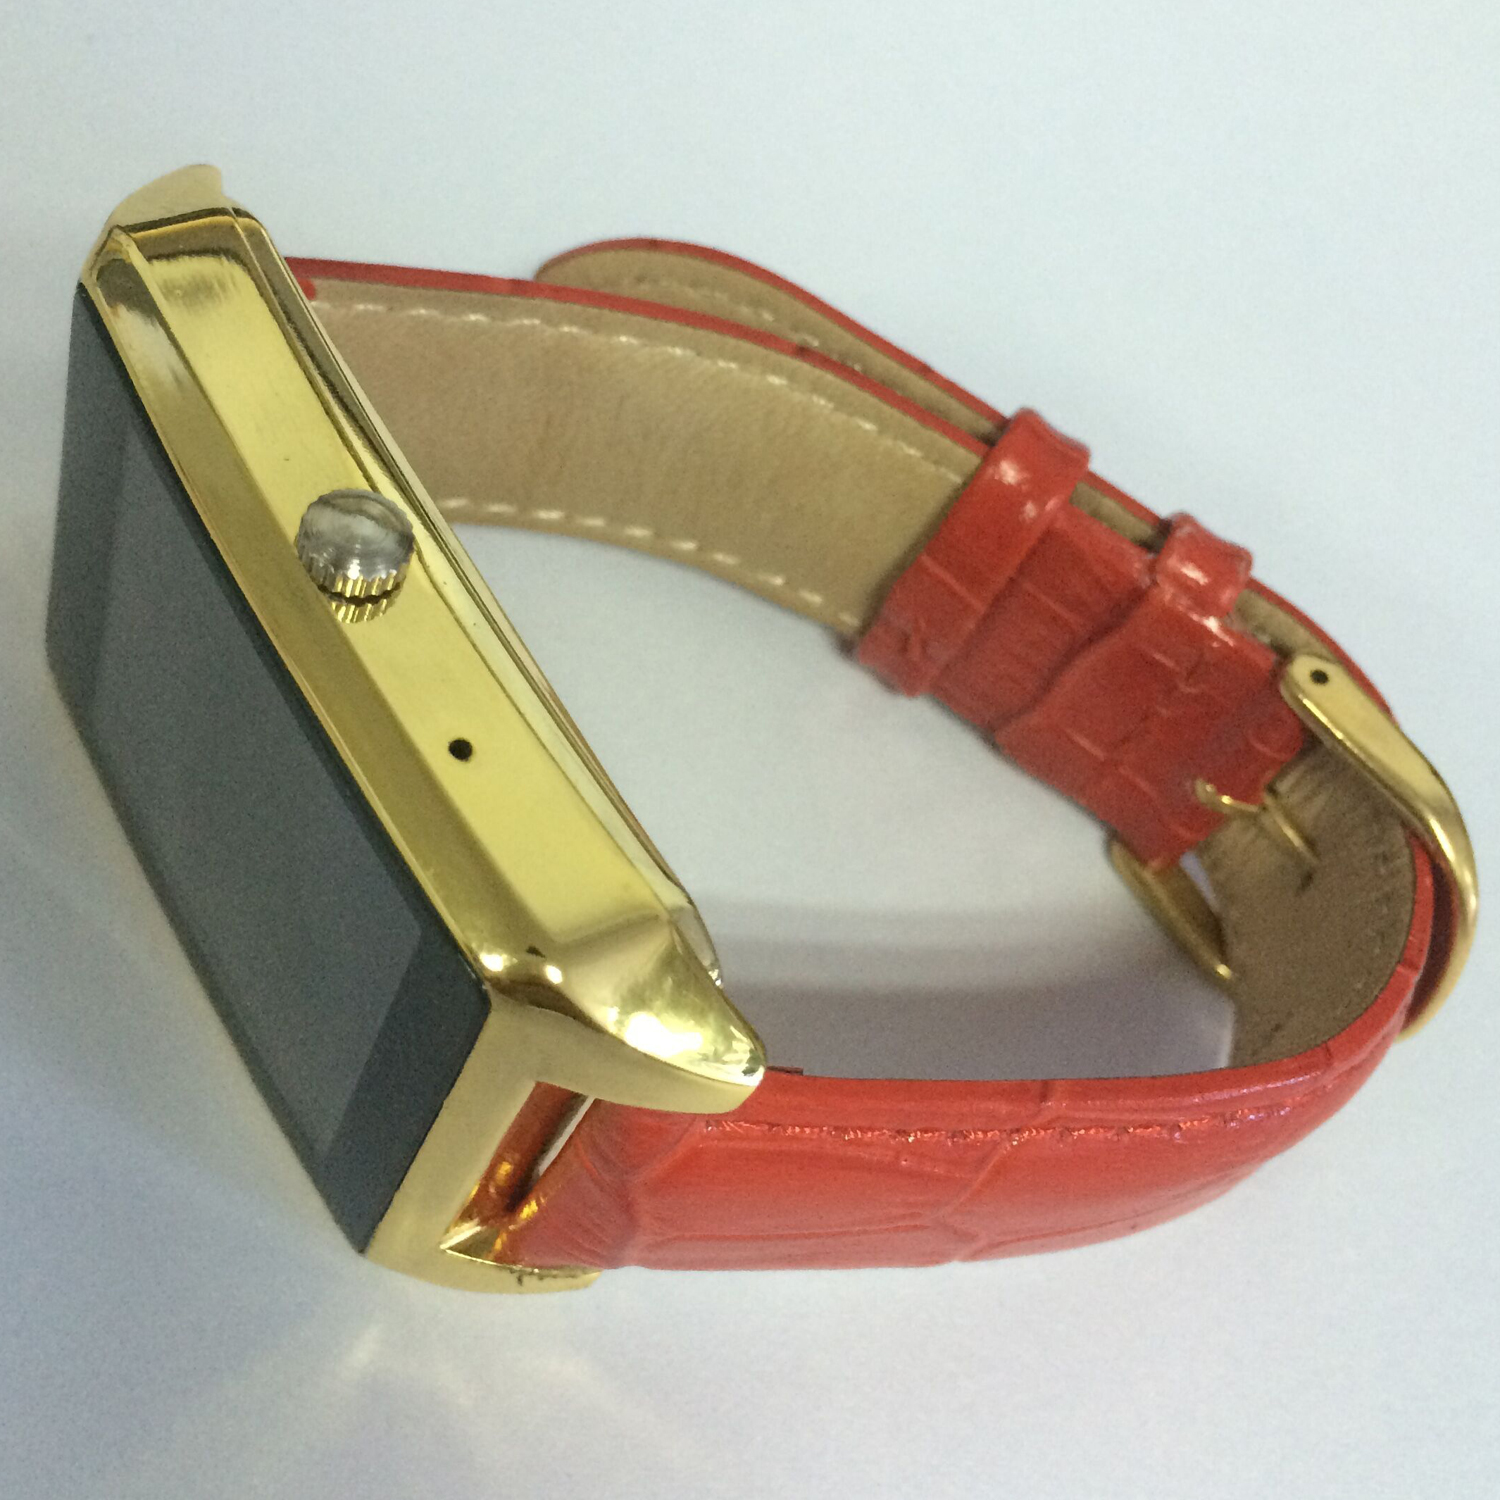 Atongm W013 Smart Bluetooth Watch Android 4.3 Waterproof 1.6 Inch for Android/IOS Gold